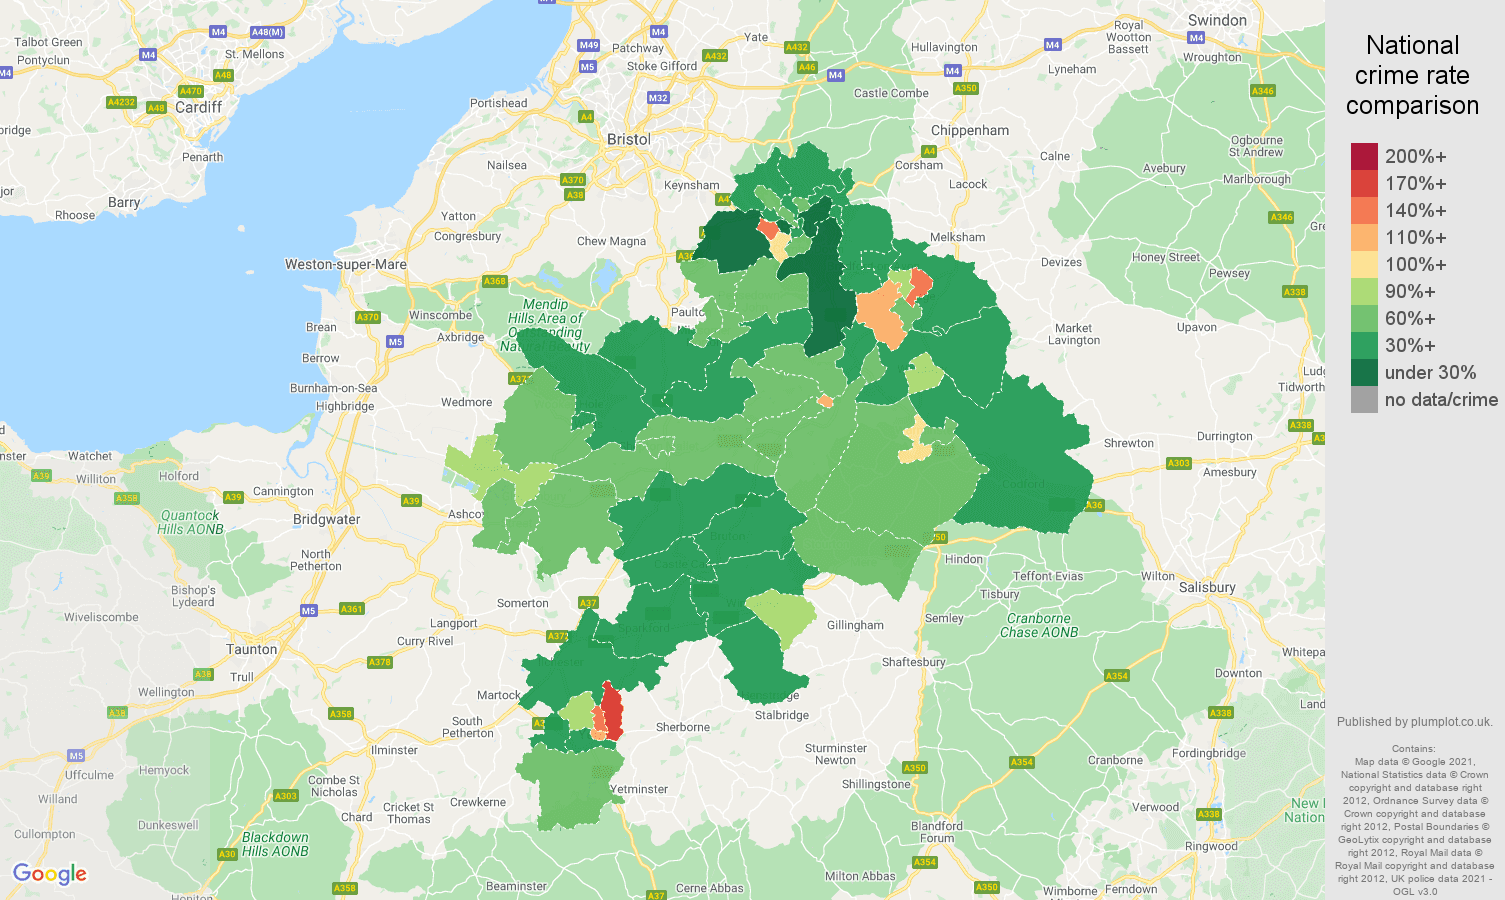 Bath violent crime rate comparison map